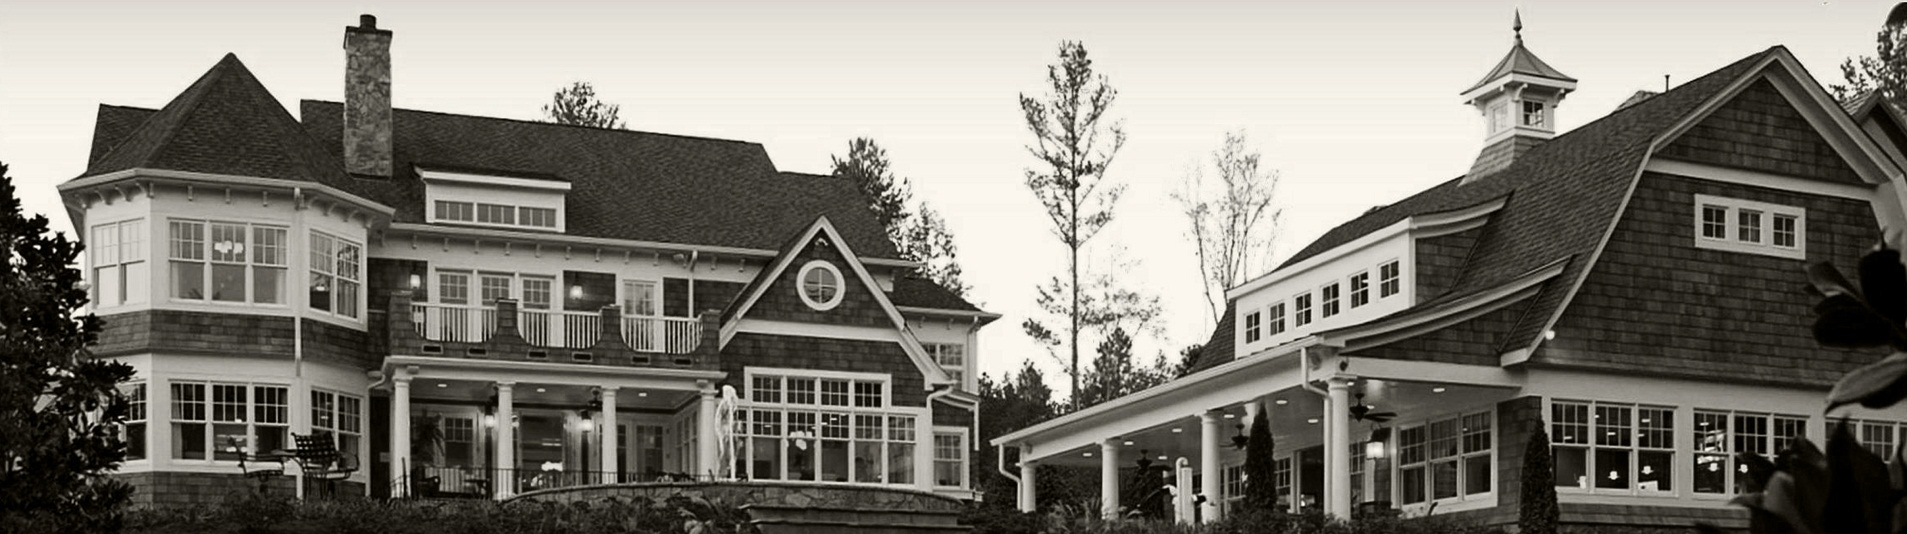 Amazing Shingle Style House